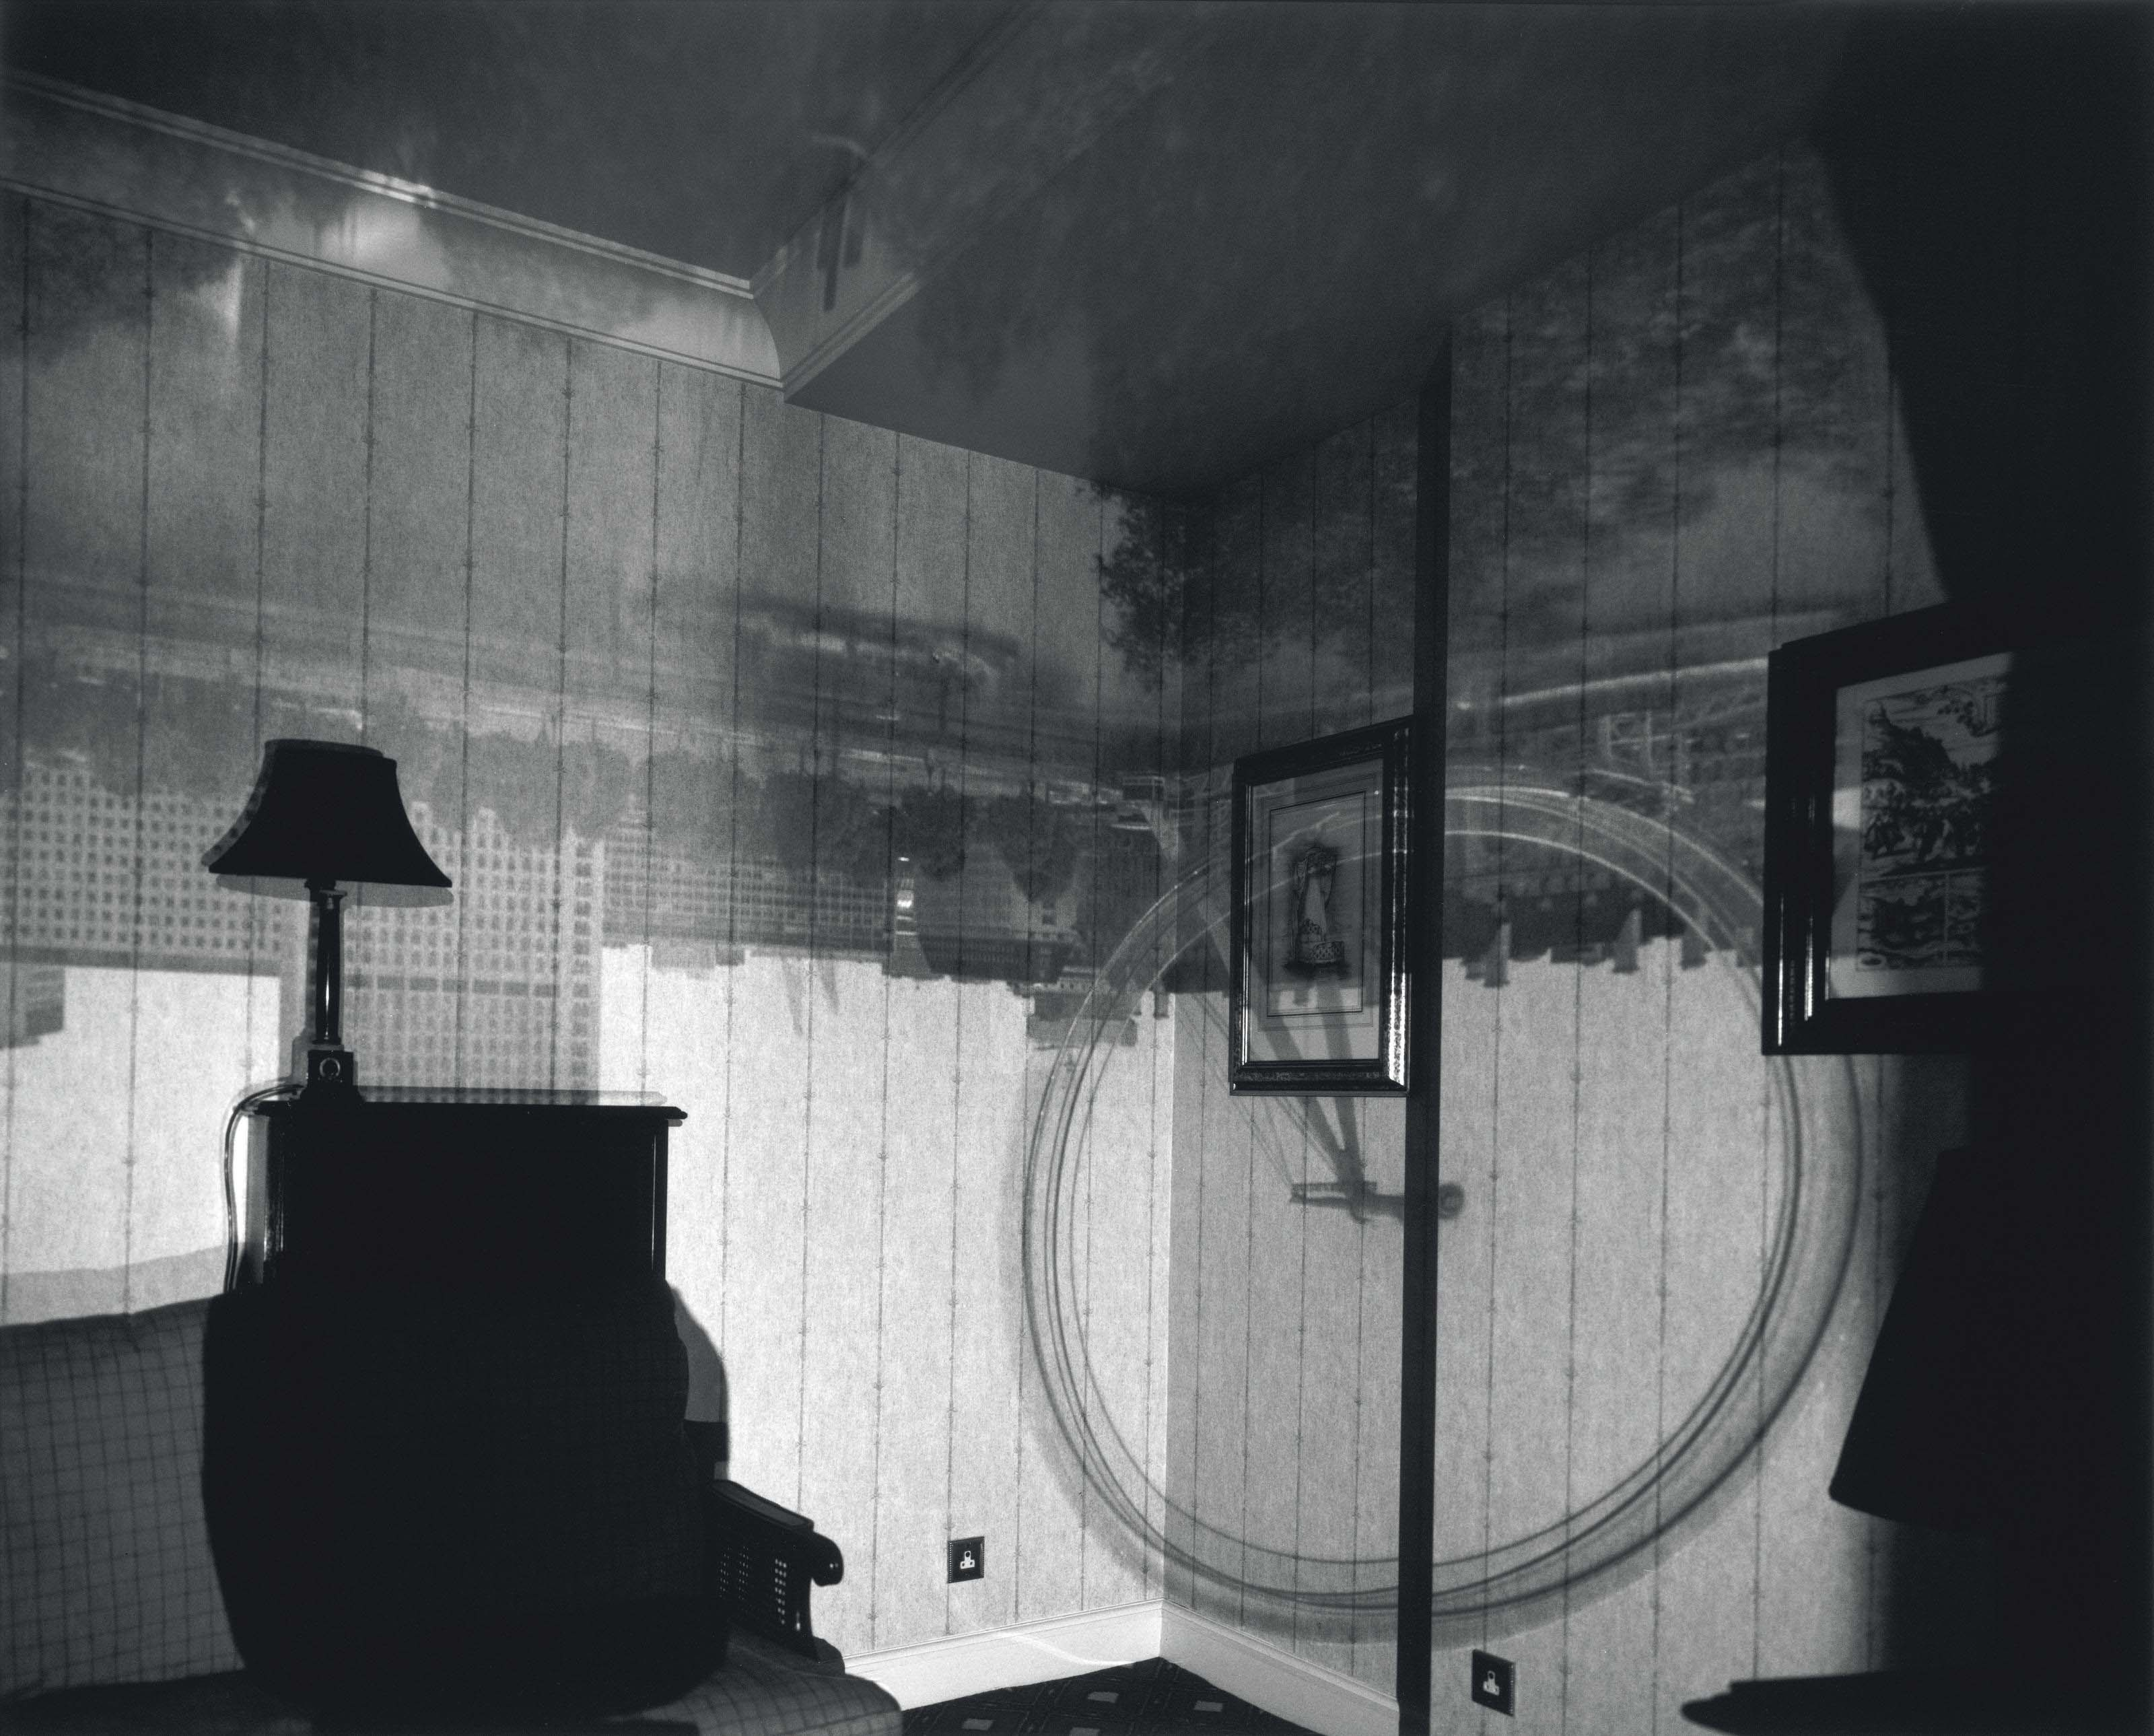 Camera Obscura Image of the London Eye, Inside the Royal Horse Guards Hotel, 2001